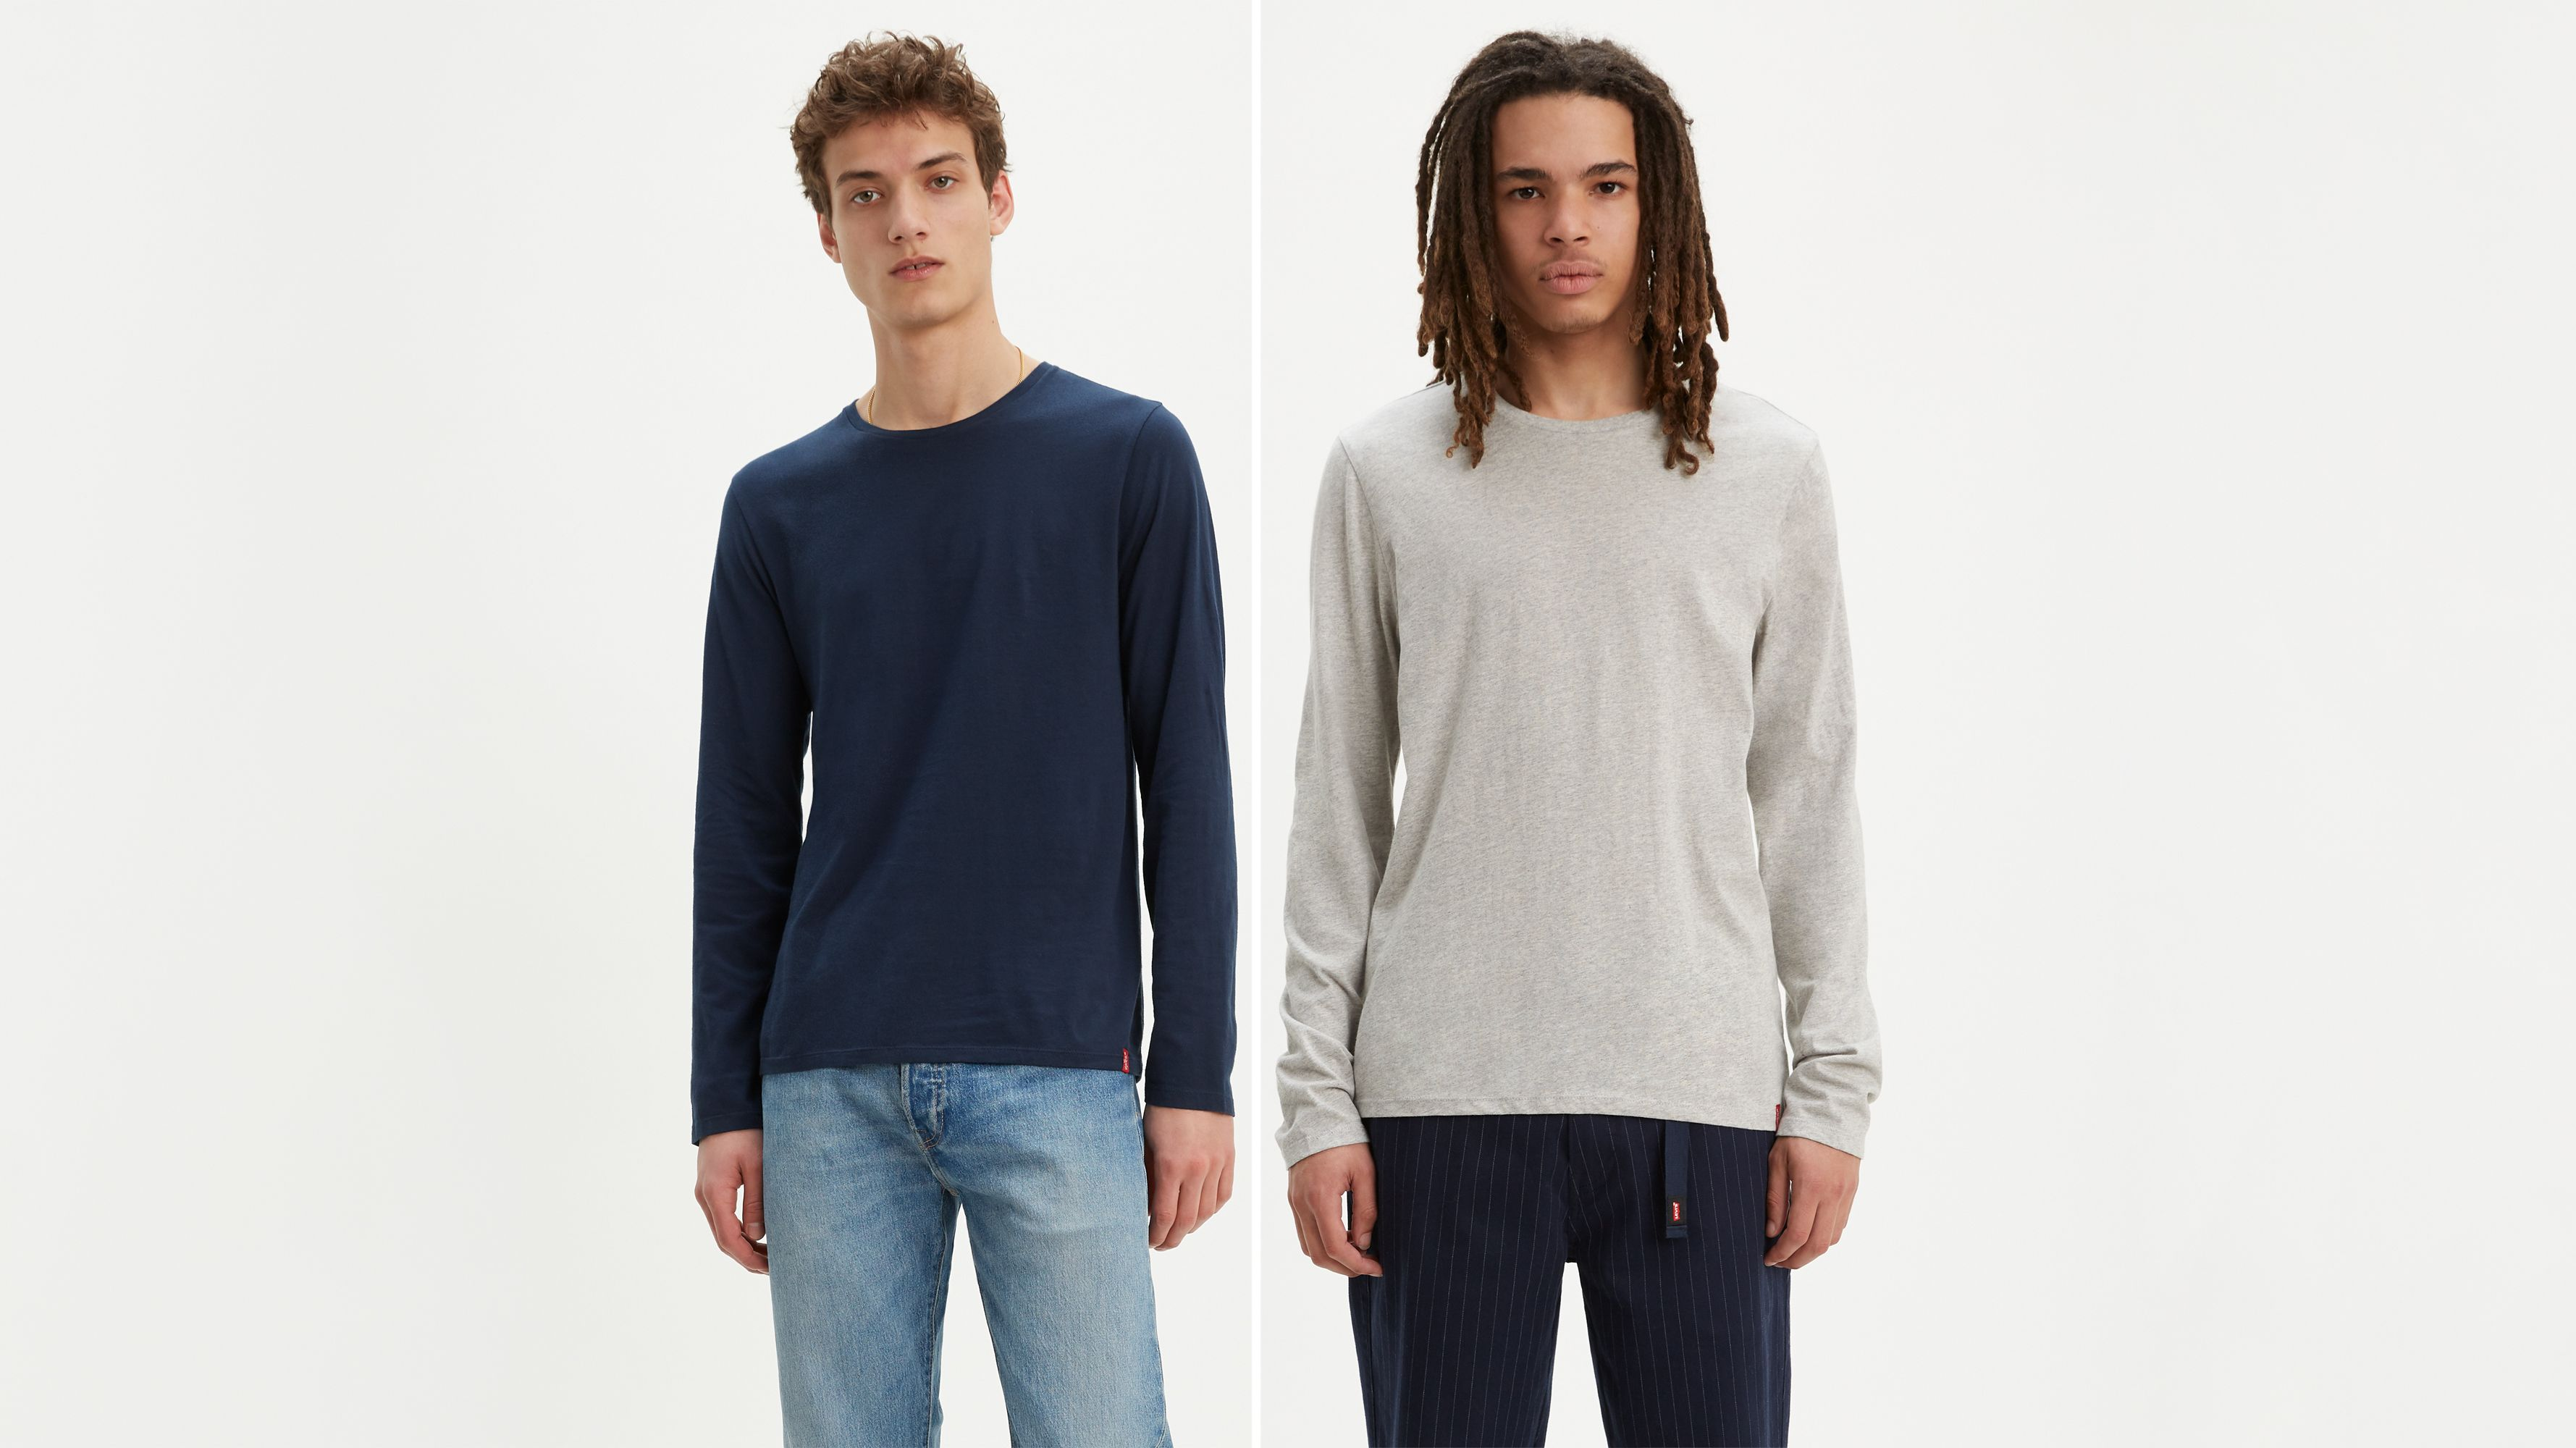 Longsleeve Slim Fit Crewneck Tee Shirt (2-Pack)